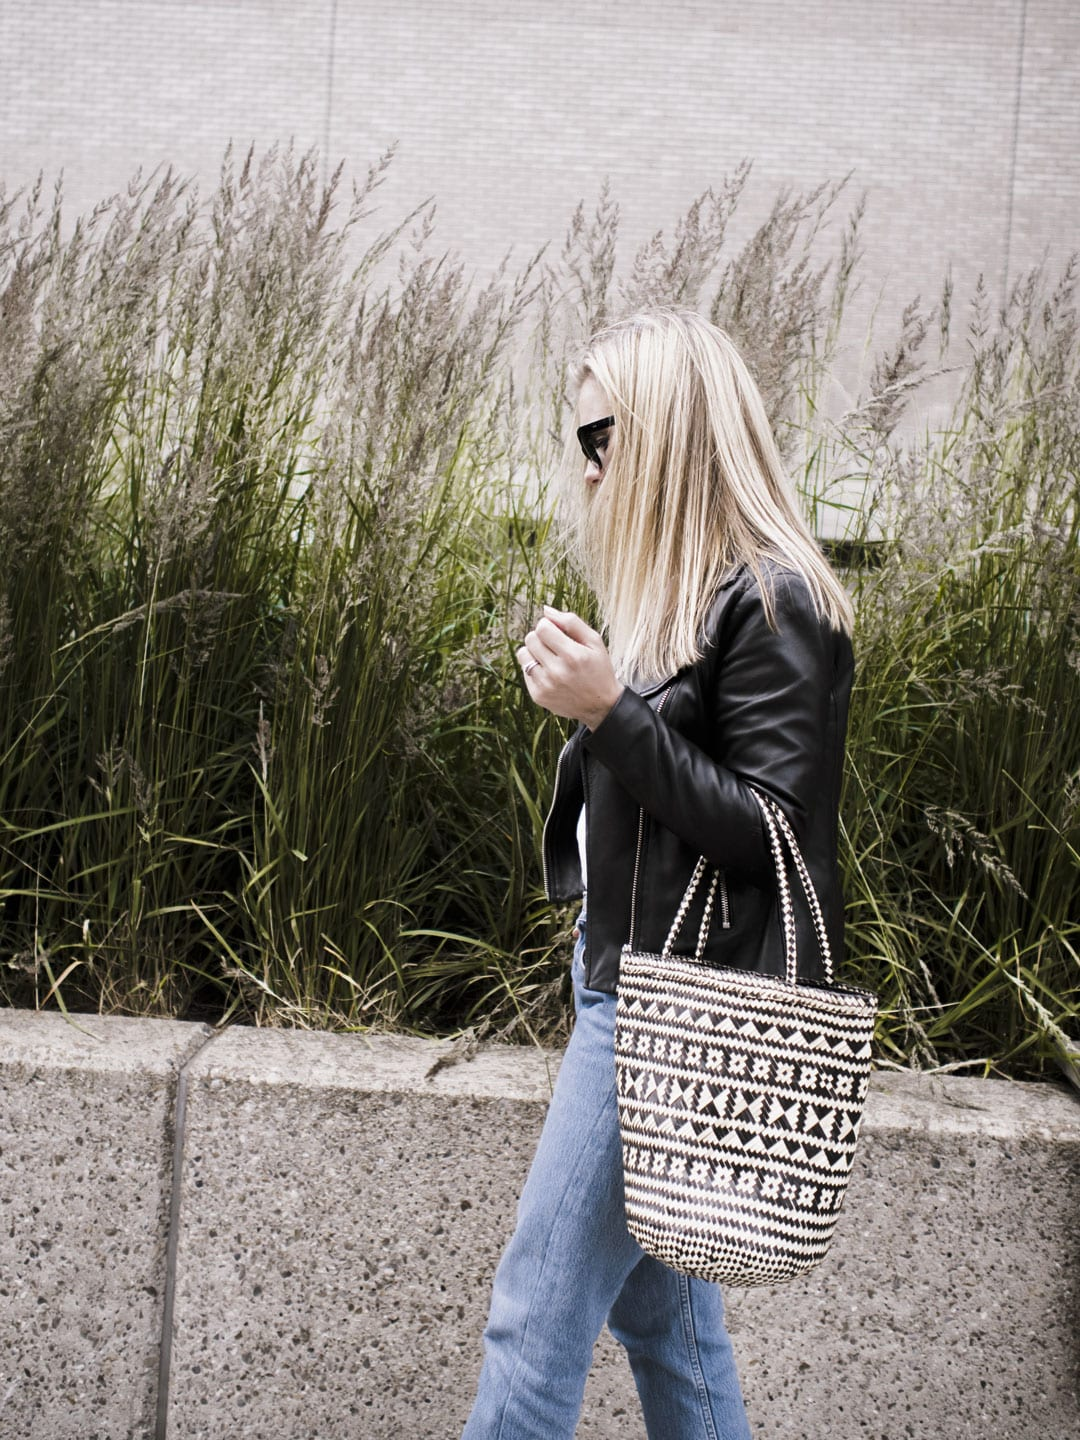 Vikki wears Levi 501s, Bass Weejun black loafers, straw bag, Ace & Tate black sunglasses and Sandro biker jacket